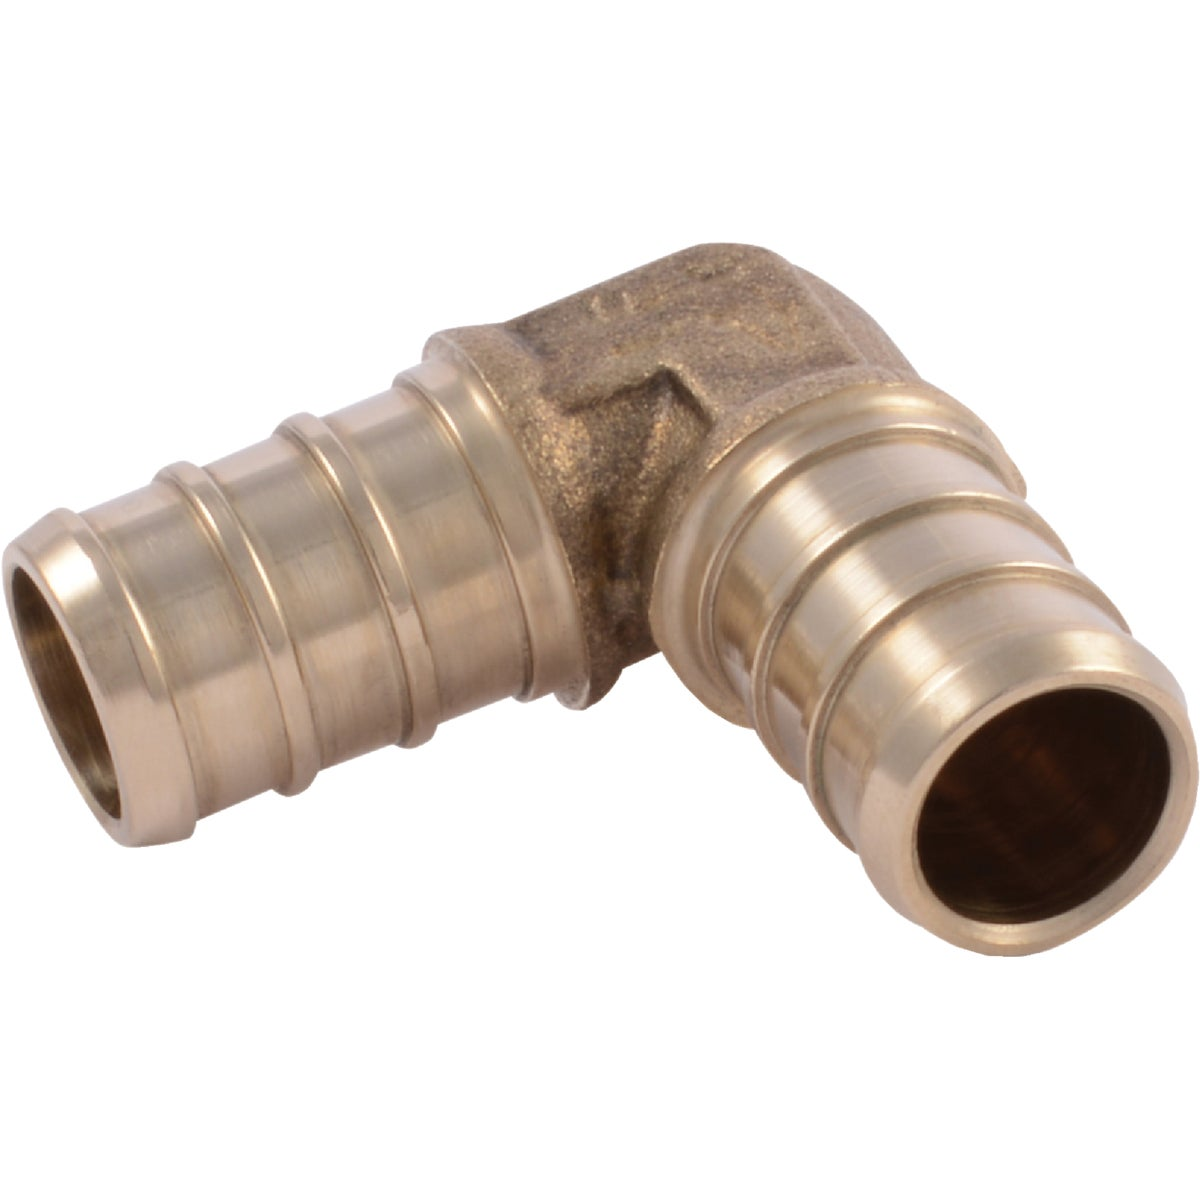 "10PK 1/2""CF BRASS ELBOW - LFWP19B-08PB by Watts Pex"